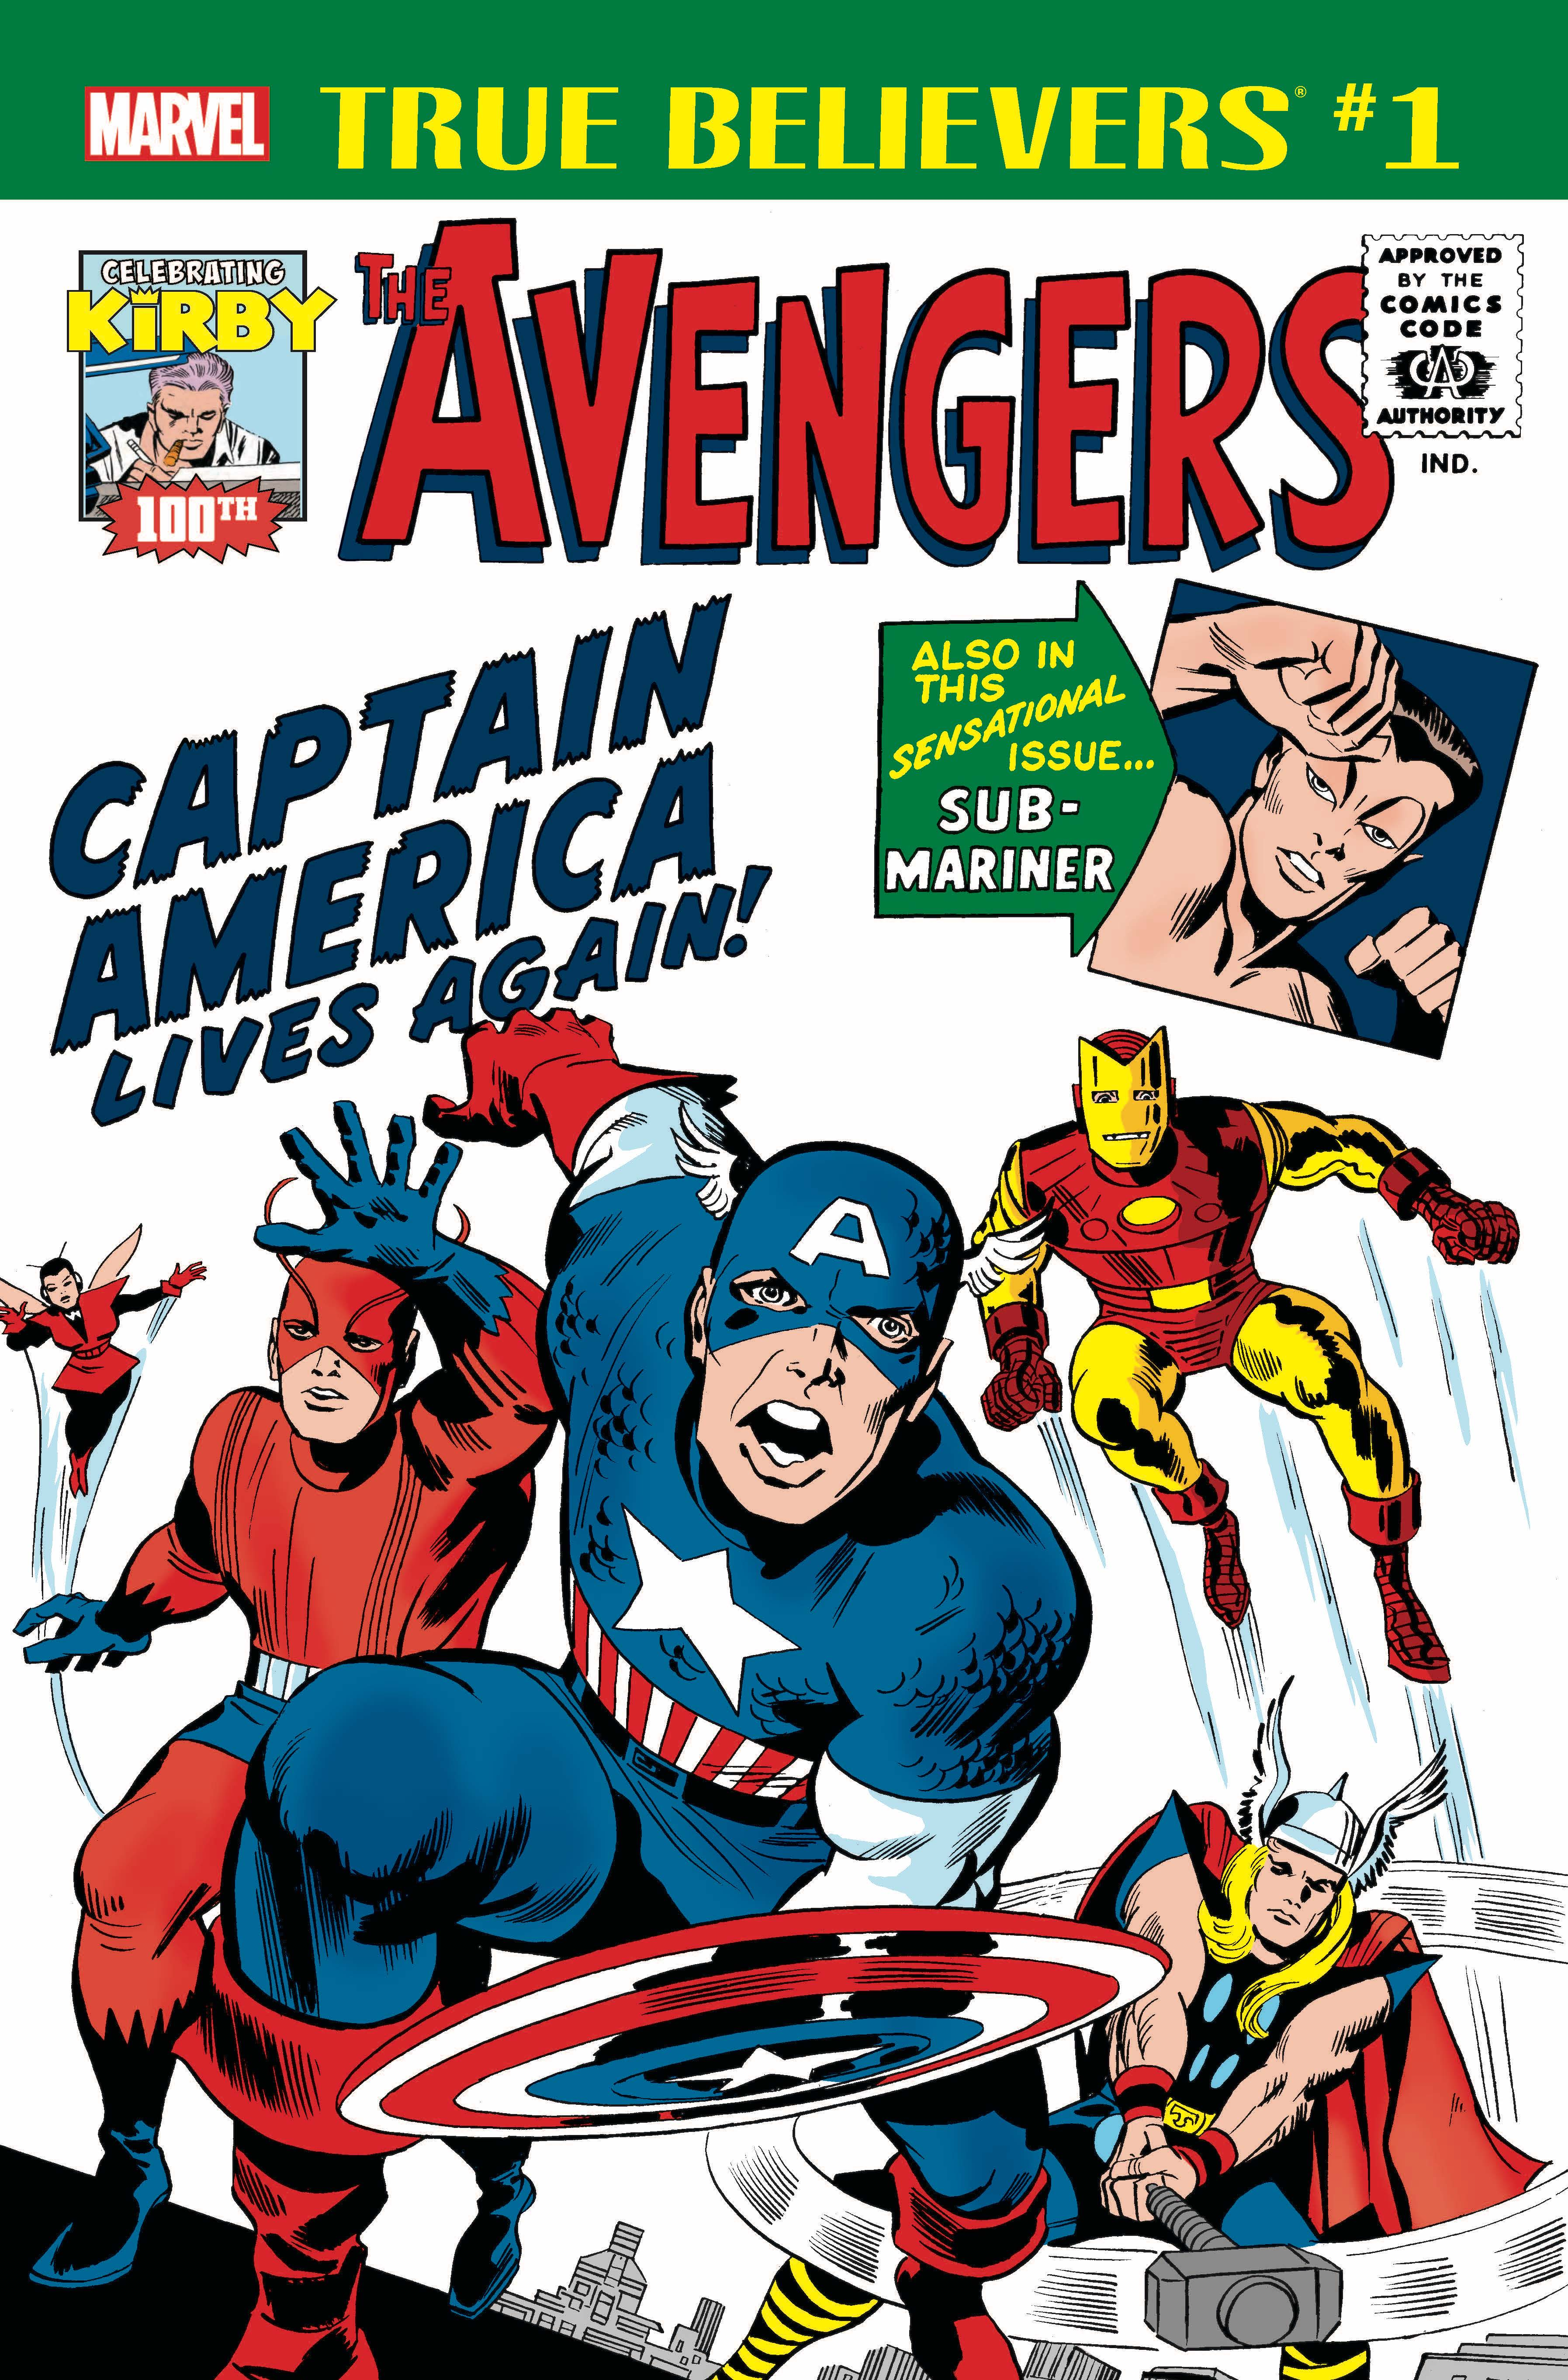 True Believers Kirby 100th - Avengers Captain America Lives Again! Vol 1 1.jpg